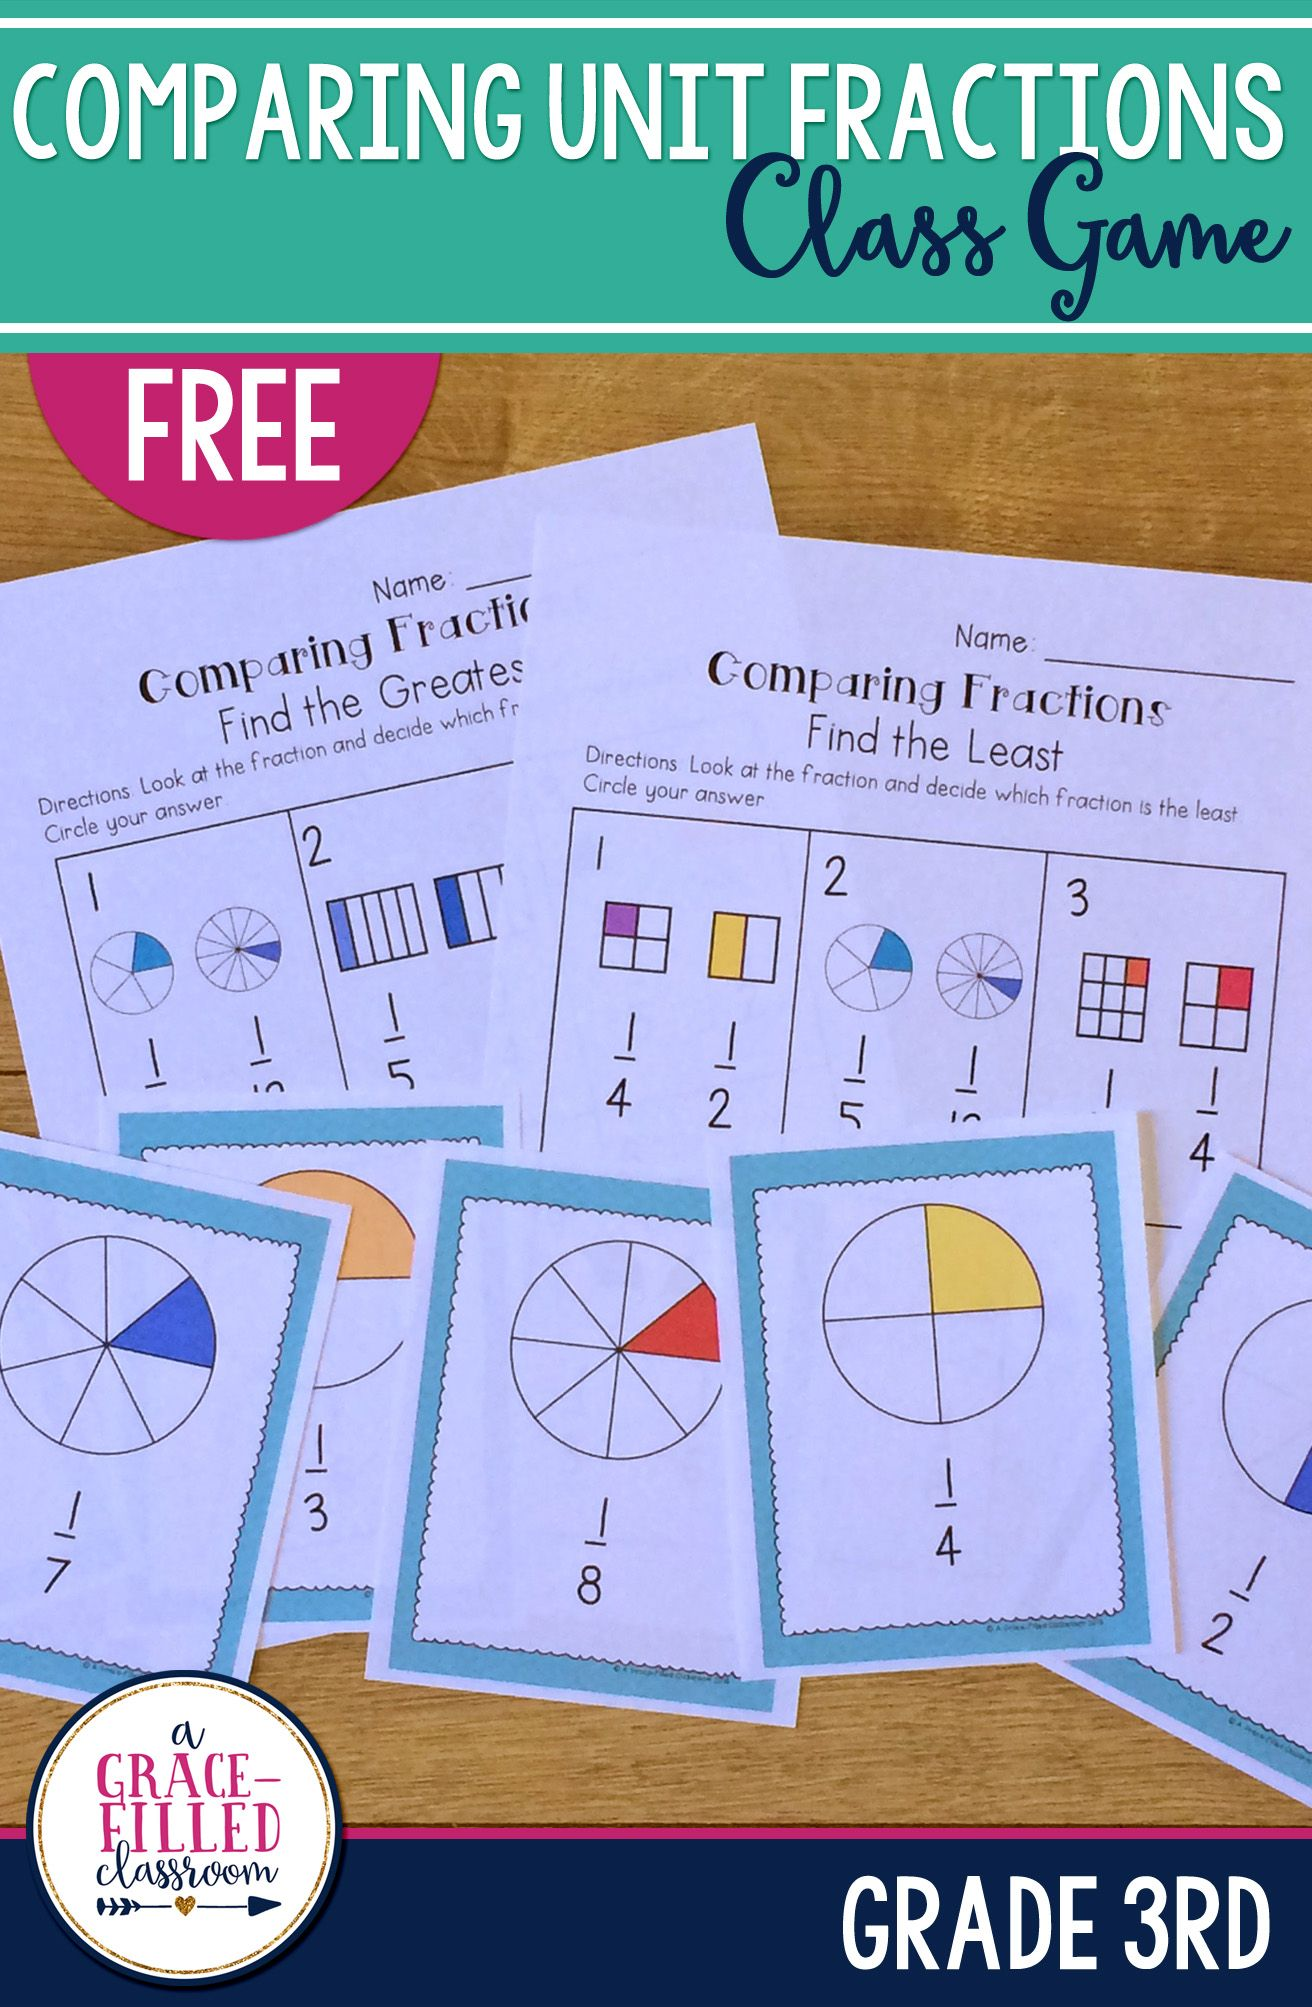 Comparing Unit Fractions Game Free